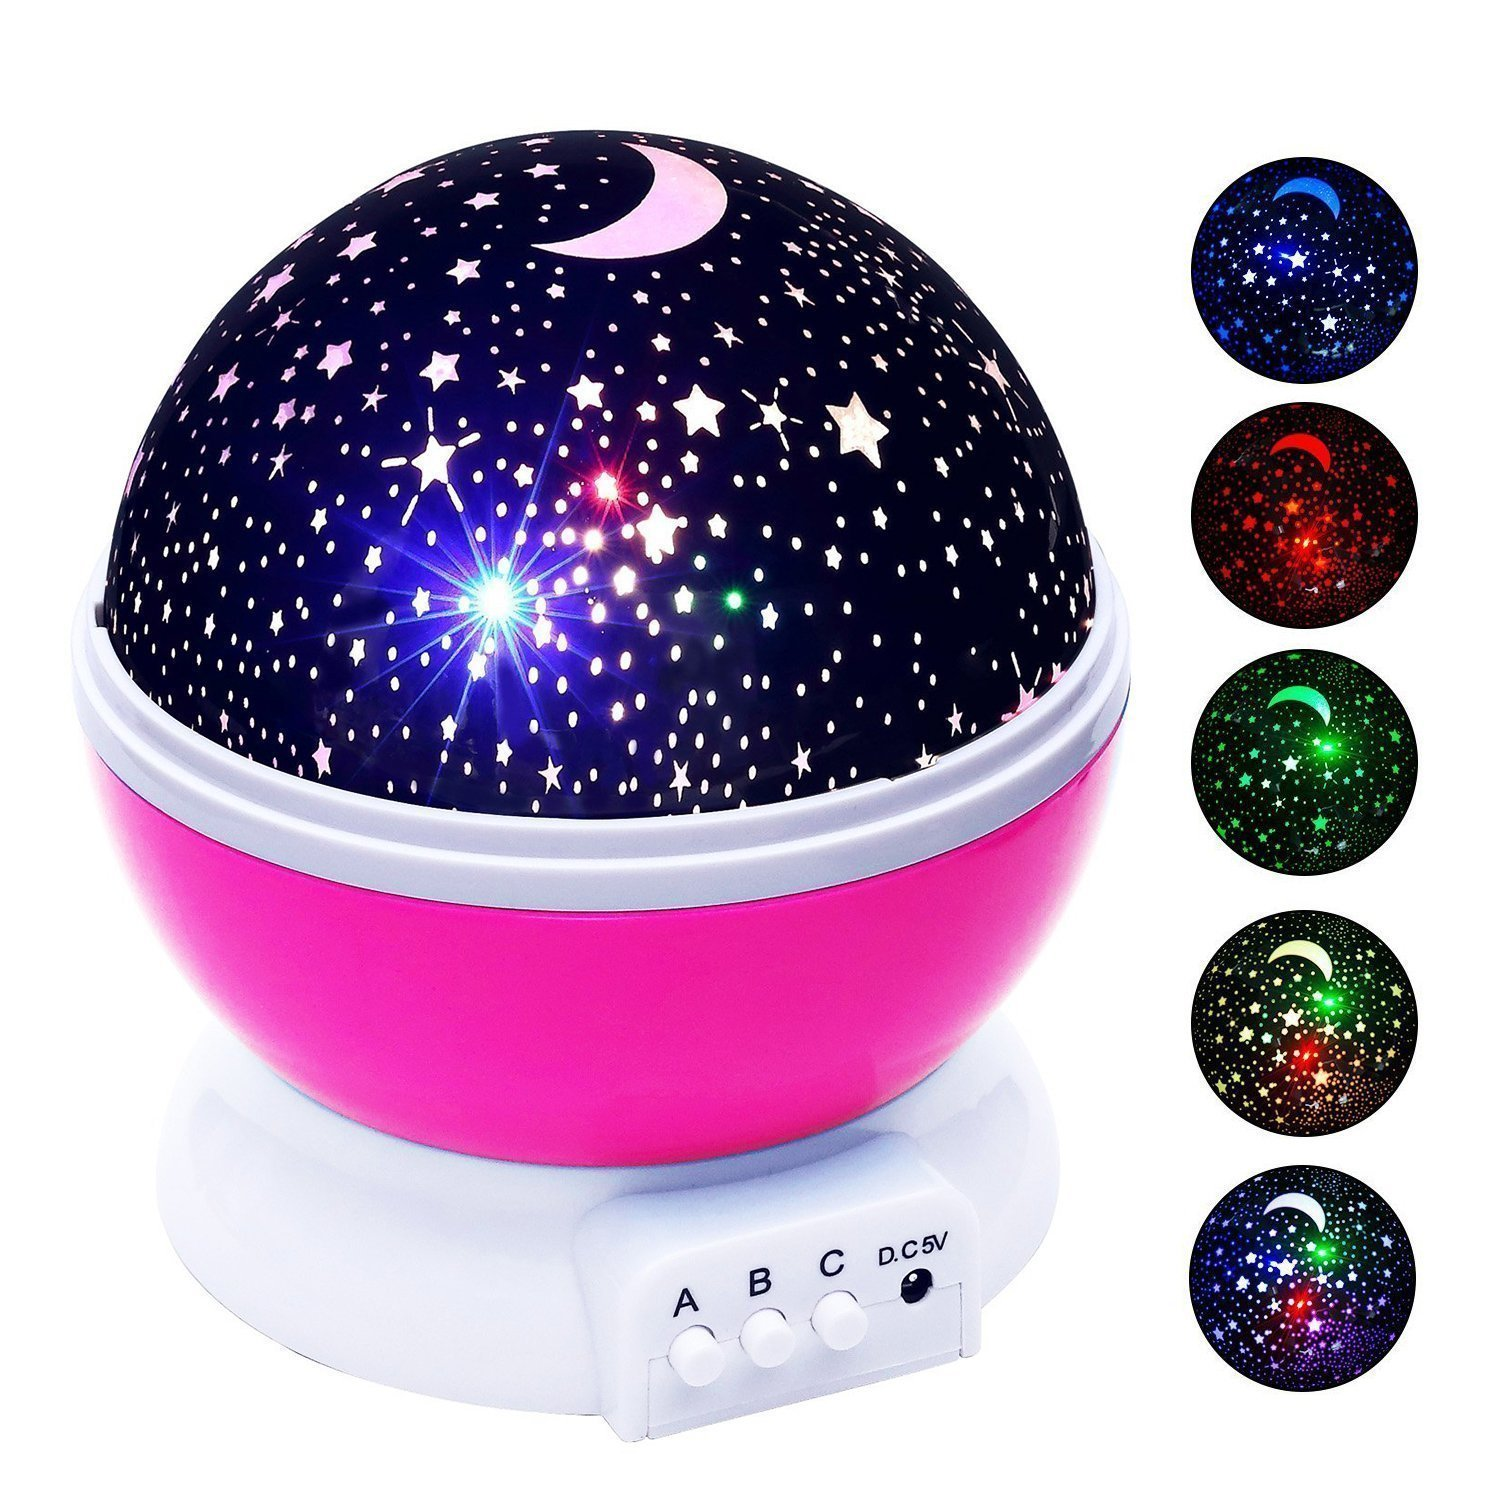 LED Night Lighting Lamp -Elecstars Light up Your Bedroom with This Moon, Star,Sky Romantic - Best Gift for Men Women Teens Kids Children Sleeping Aid (Pink Star Projector)